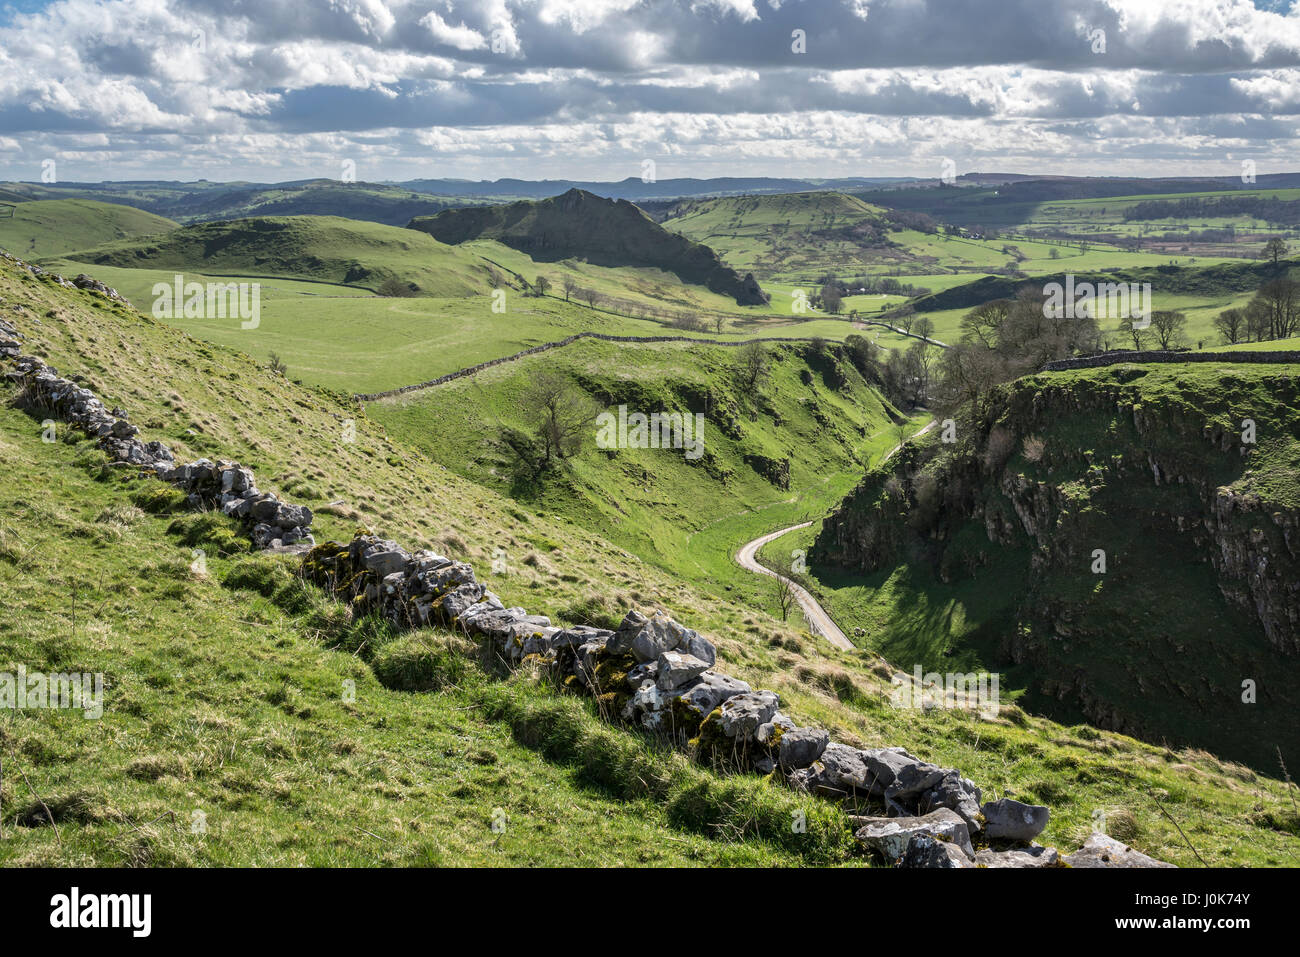 Dowel Dale and Parkhouse hill near Buxton, Derbyshire on a sunny spring day. - Stock Image